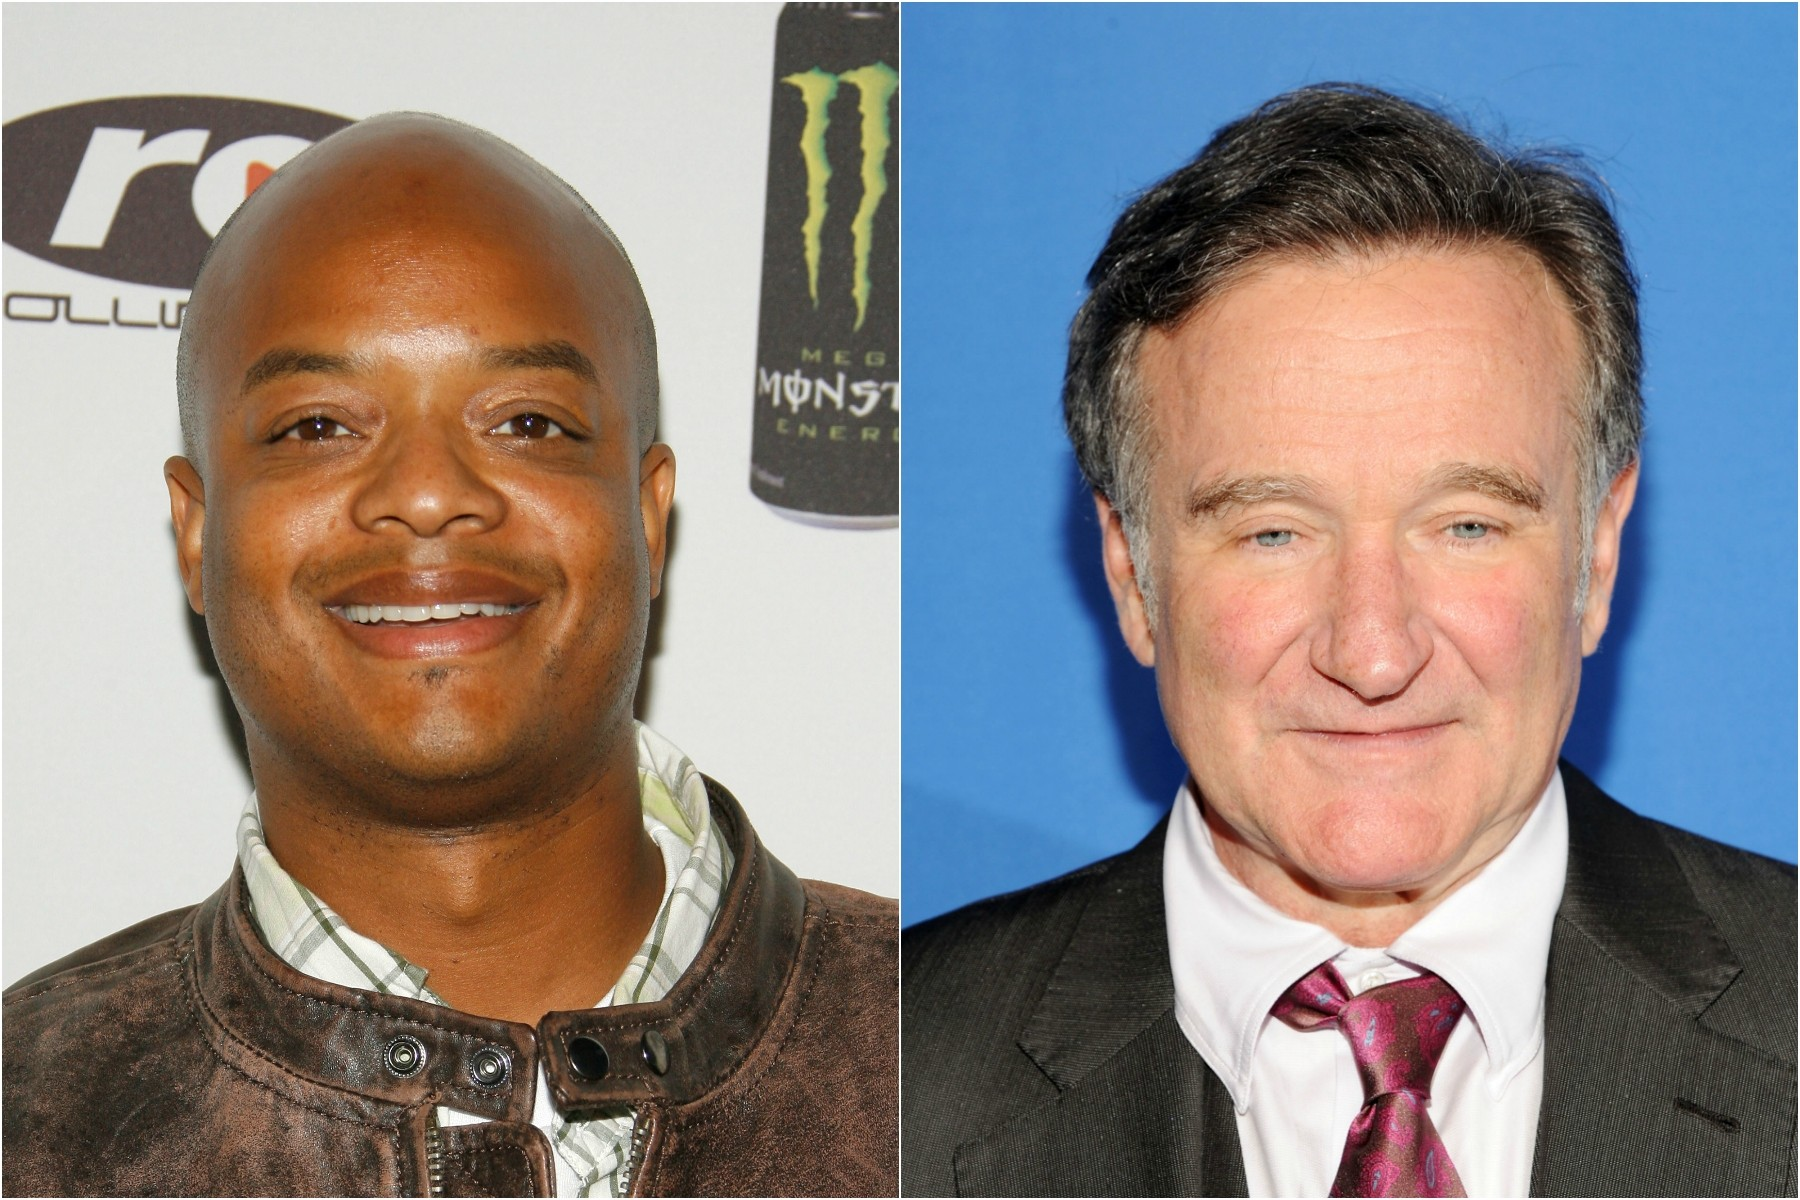 Todd Bridges e Robin Williams. (Foto: Getty Images)